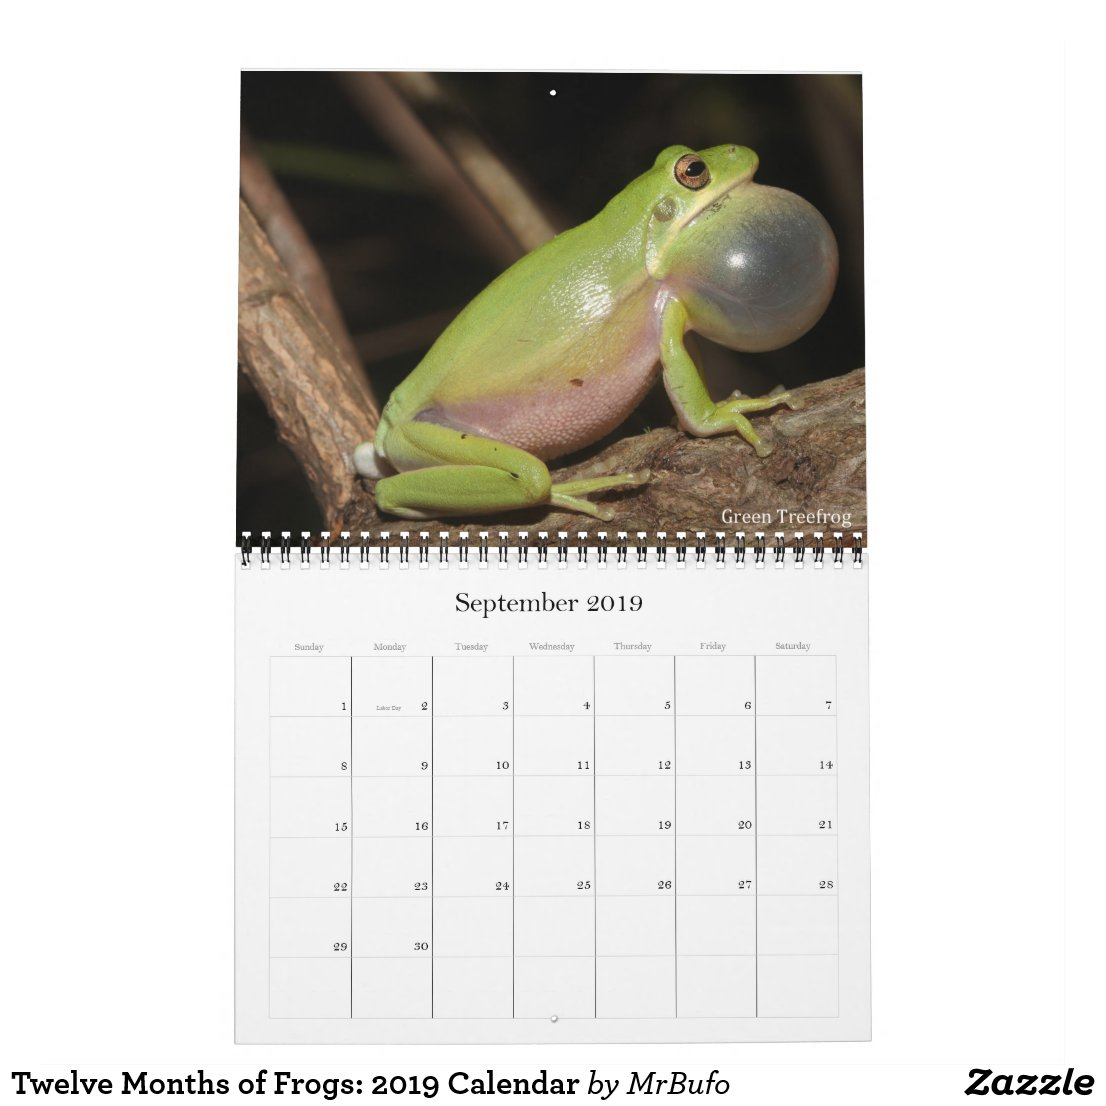 2019 Frog Photo Calendar for sale; Green Treefrog